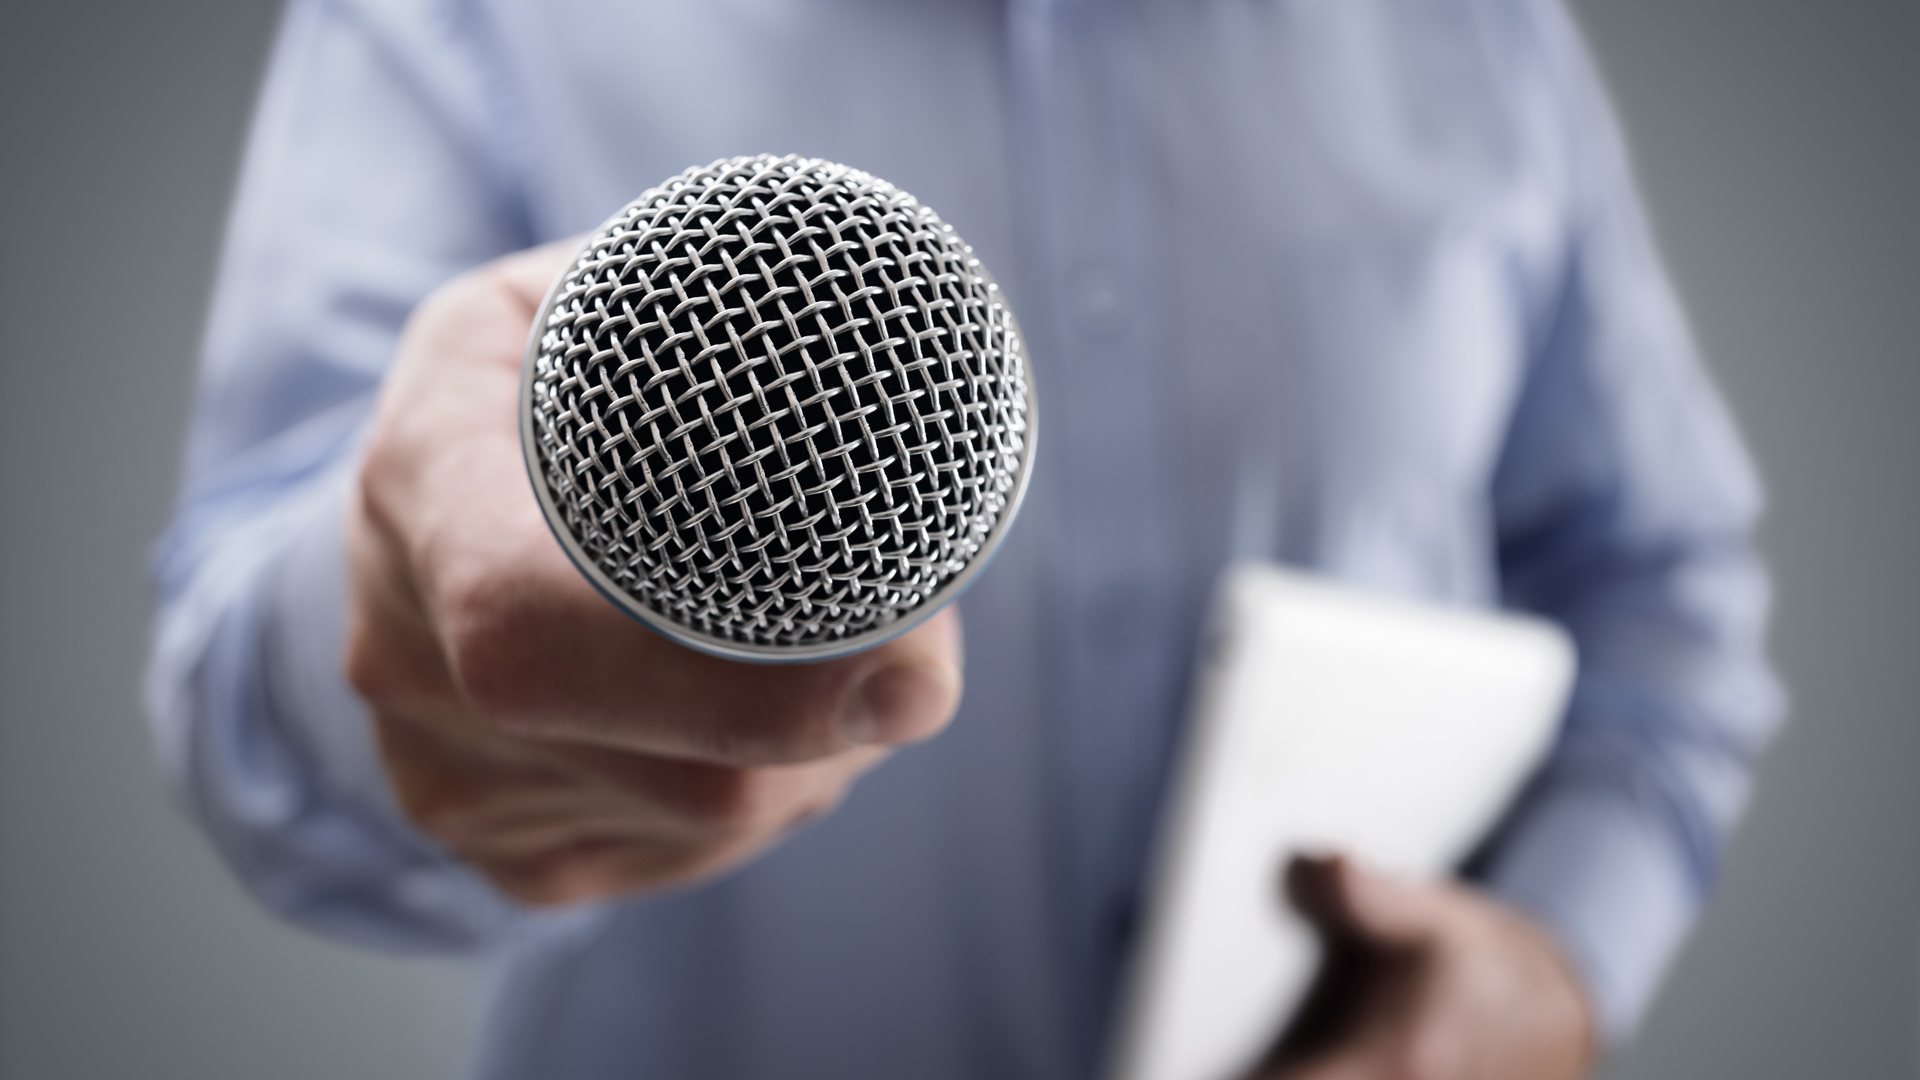 interview-with-microphone-P4R7UJ6.jpg